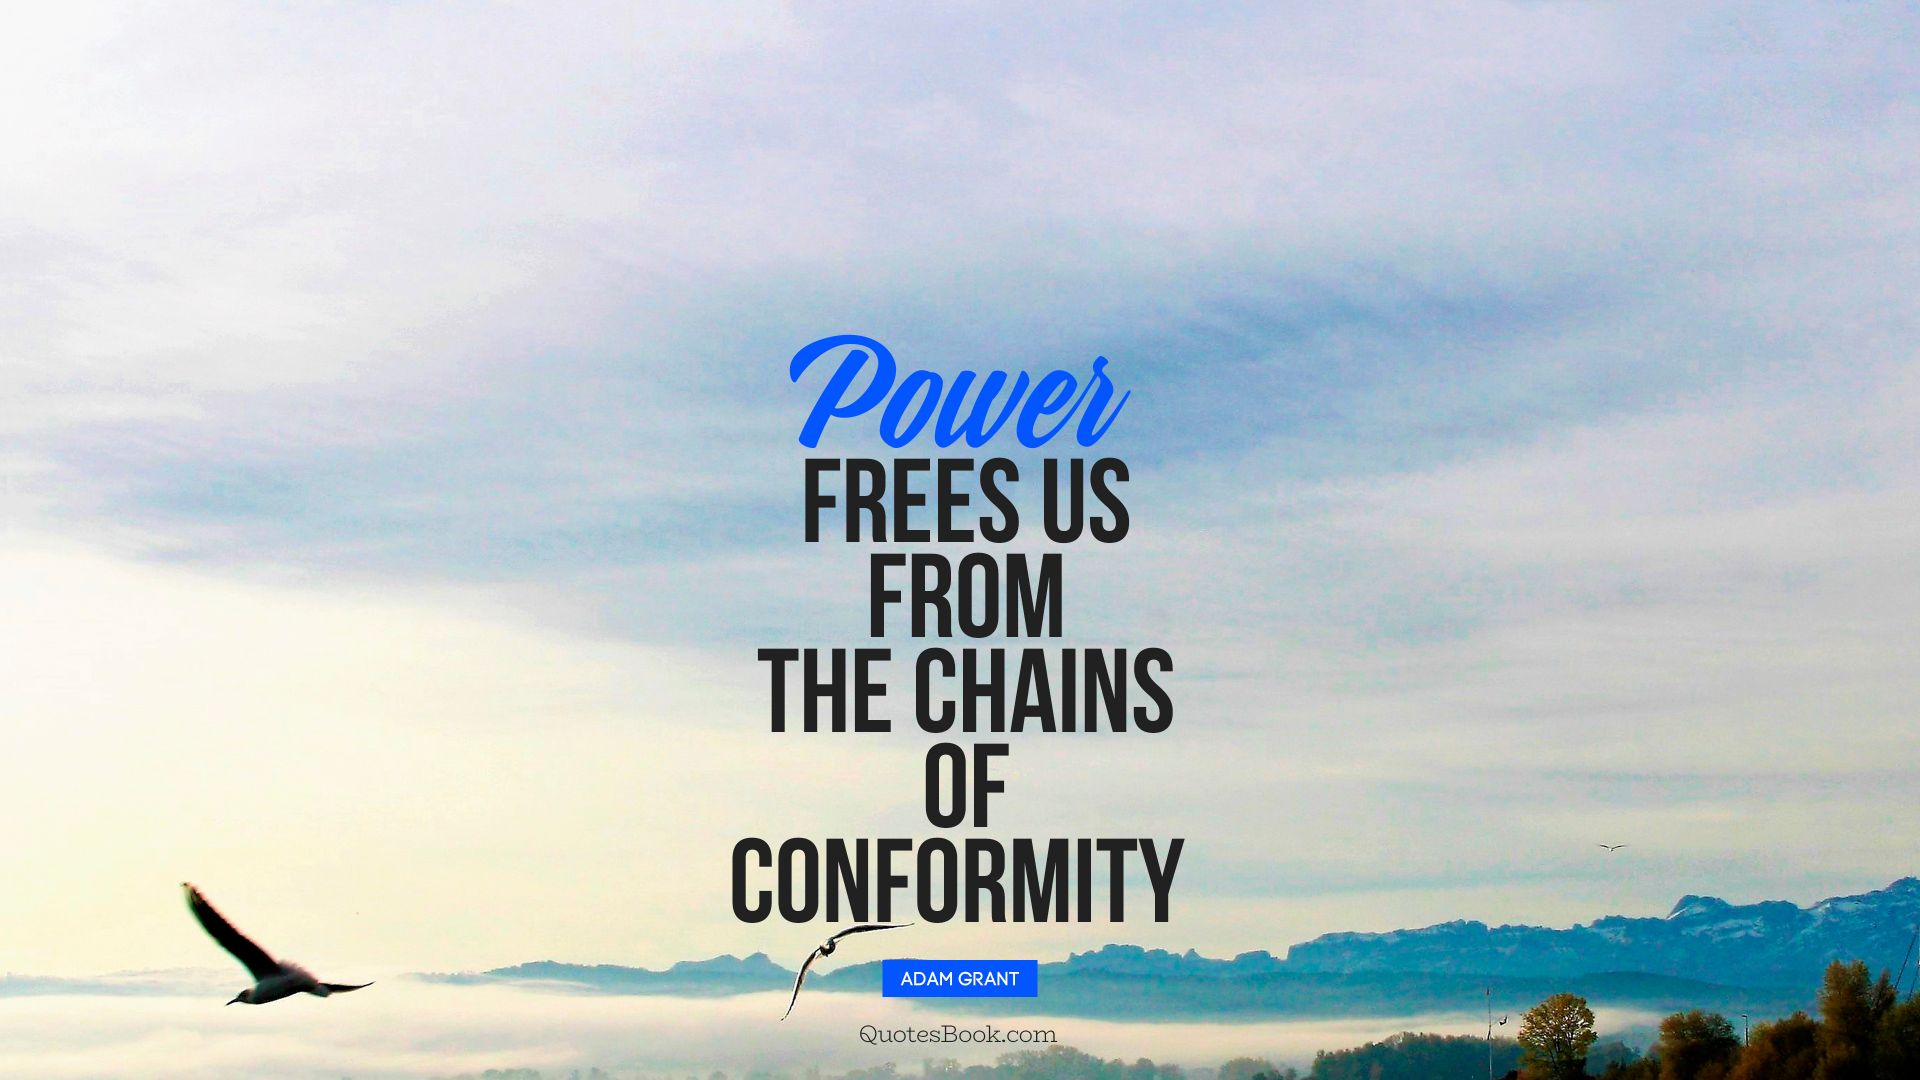 Power frees us from the chains of conformity . - Quote by Adam Grant